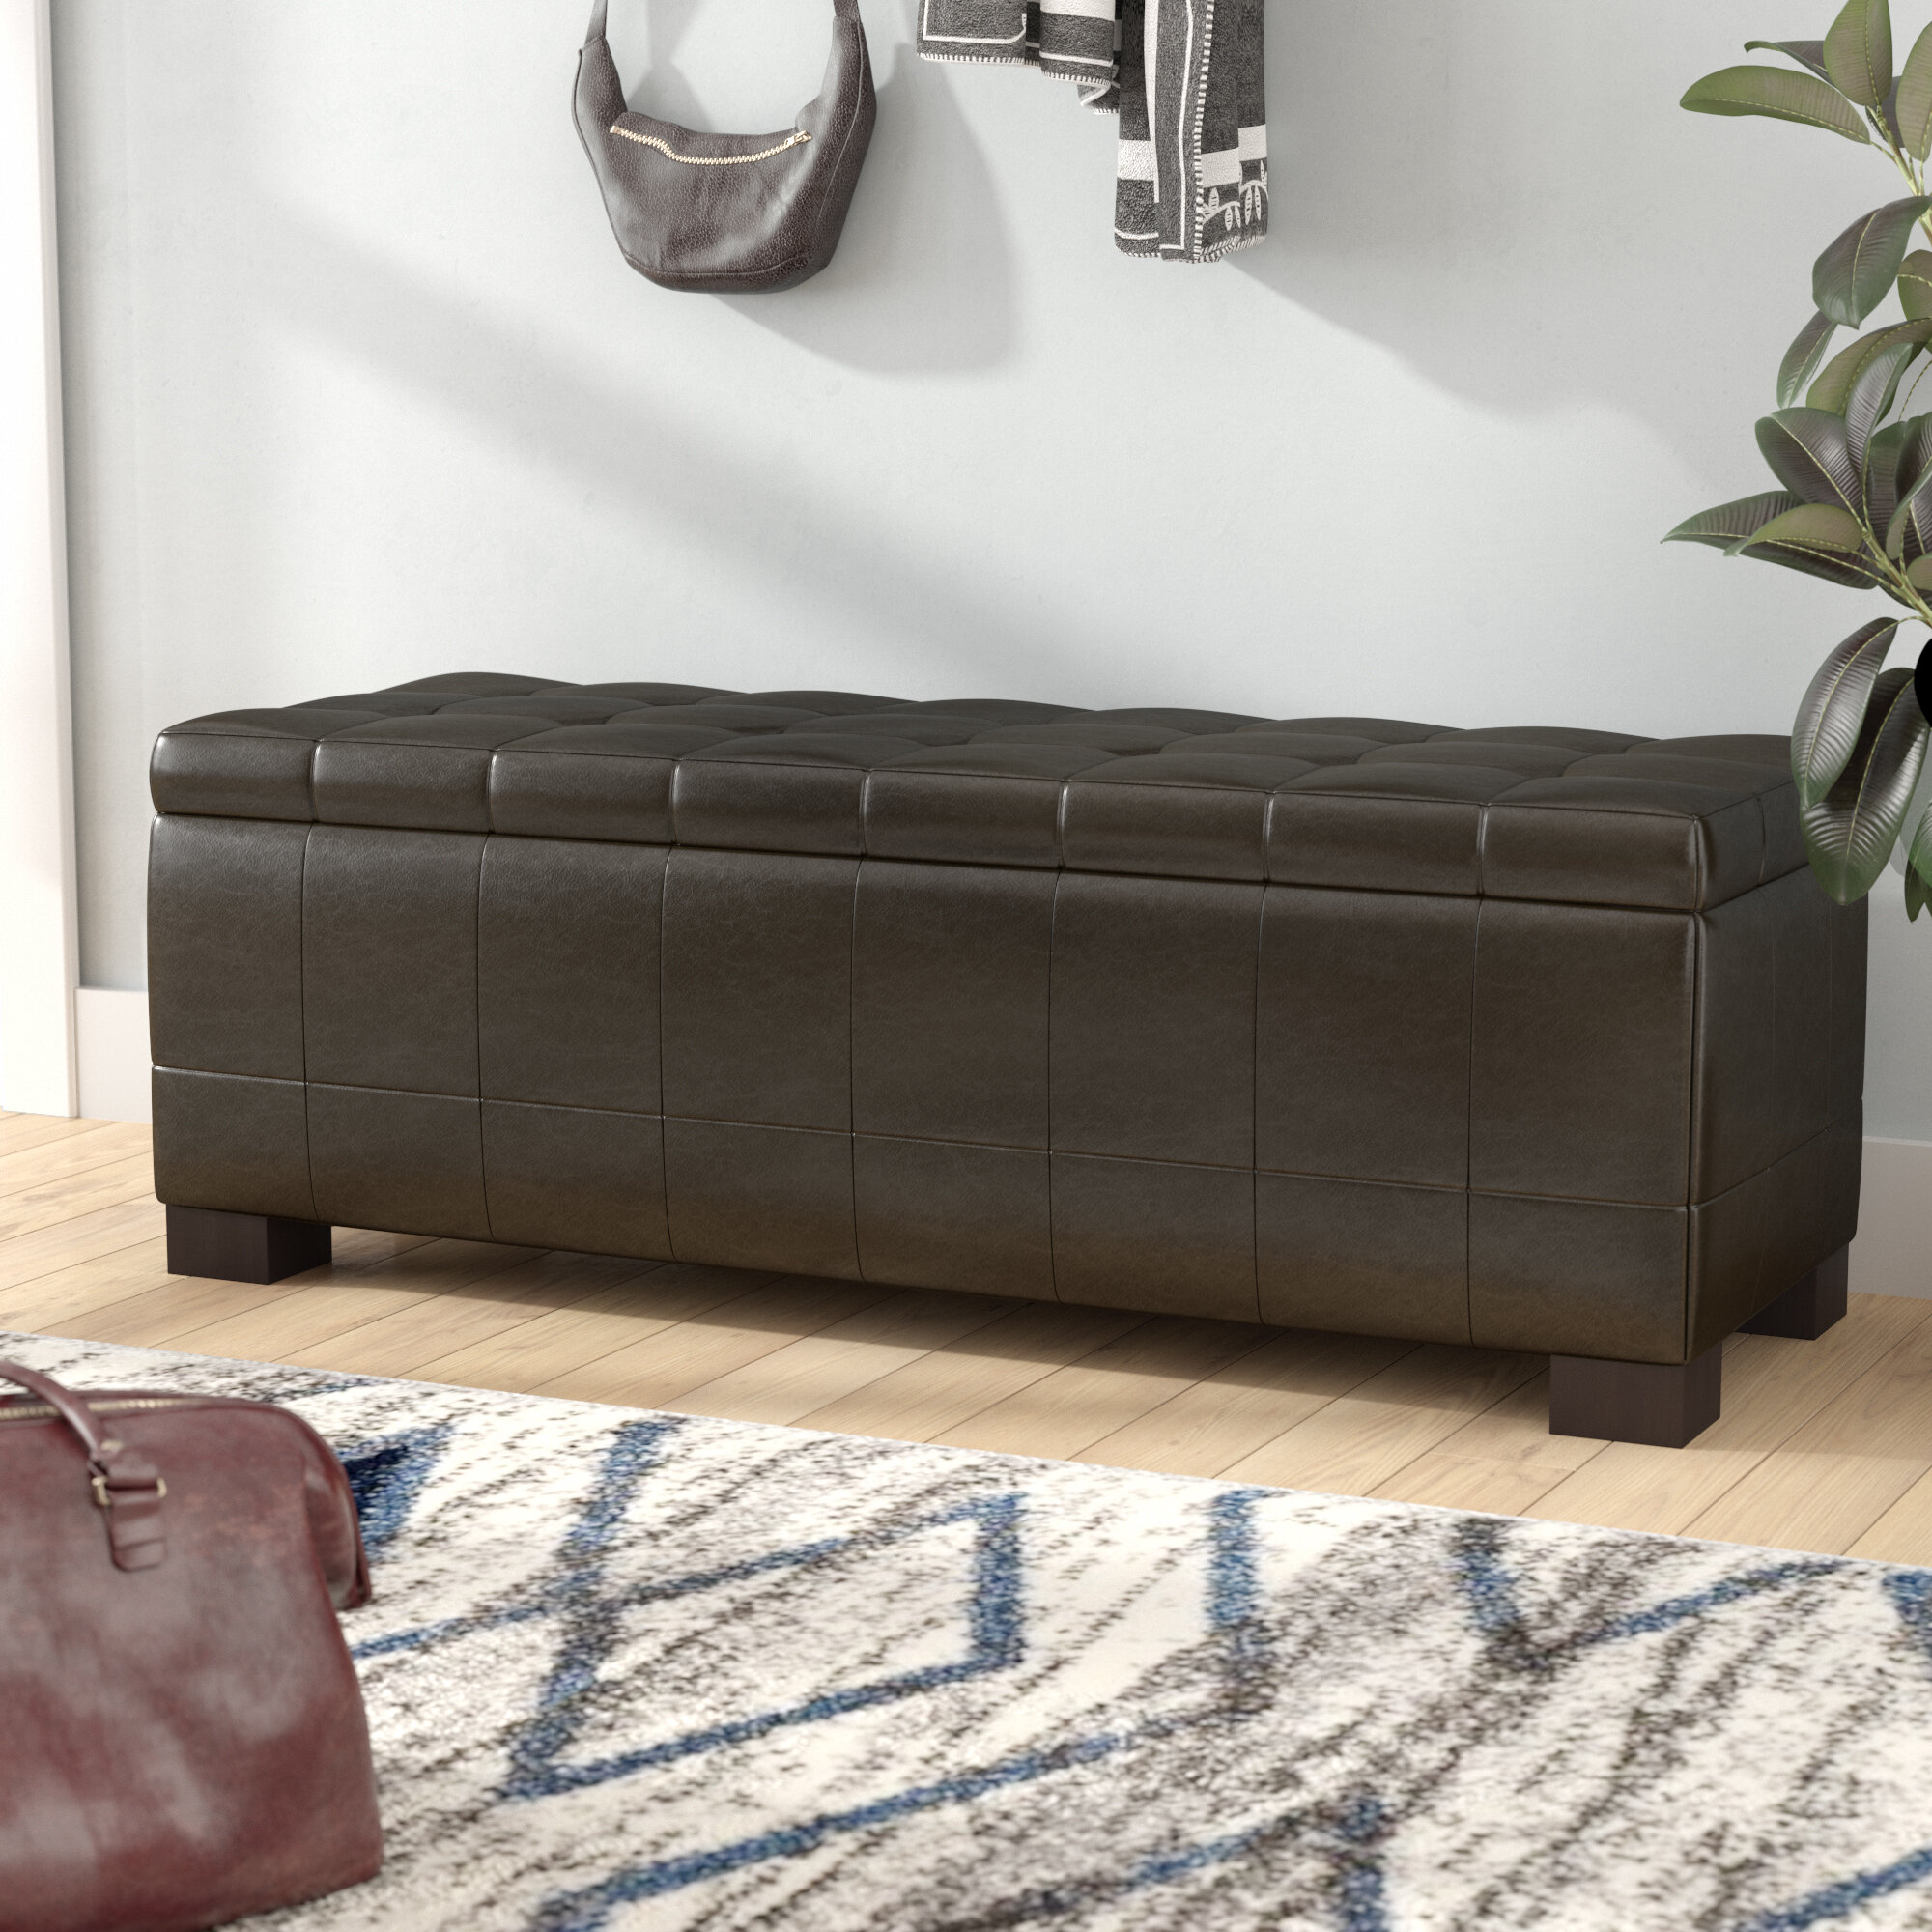 Brayden Studio Maiden Upholstered Flip Top Storage Bench Reviews Wayfair